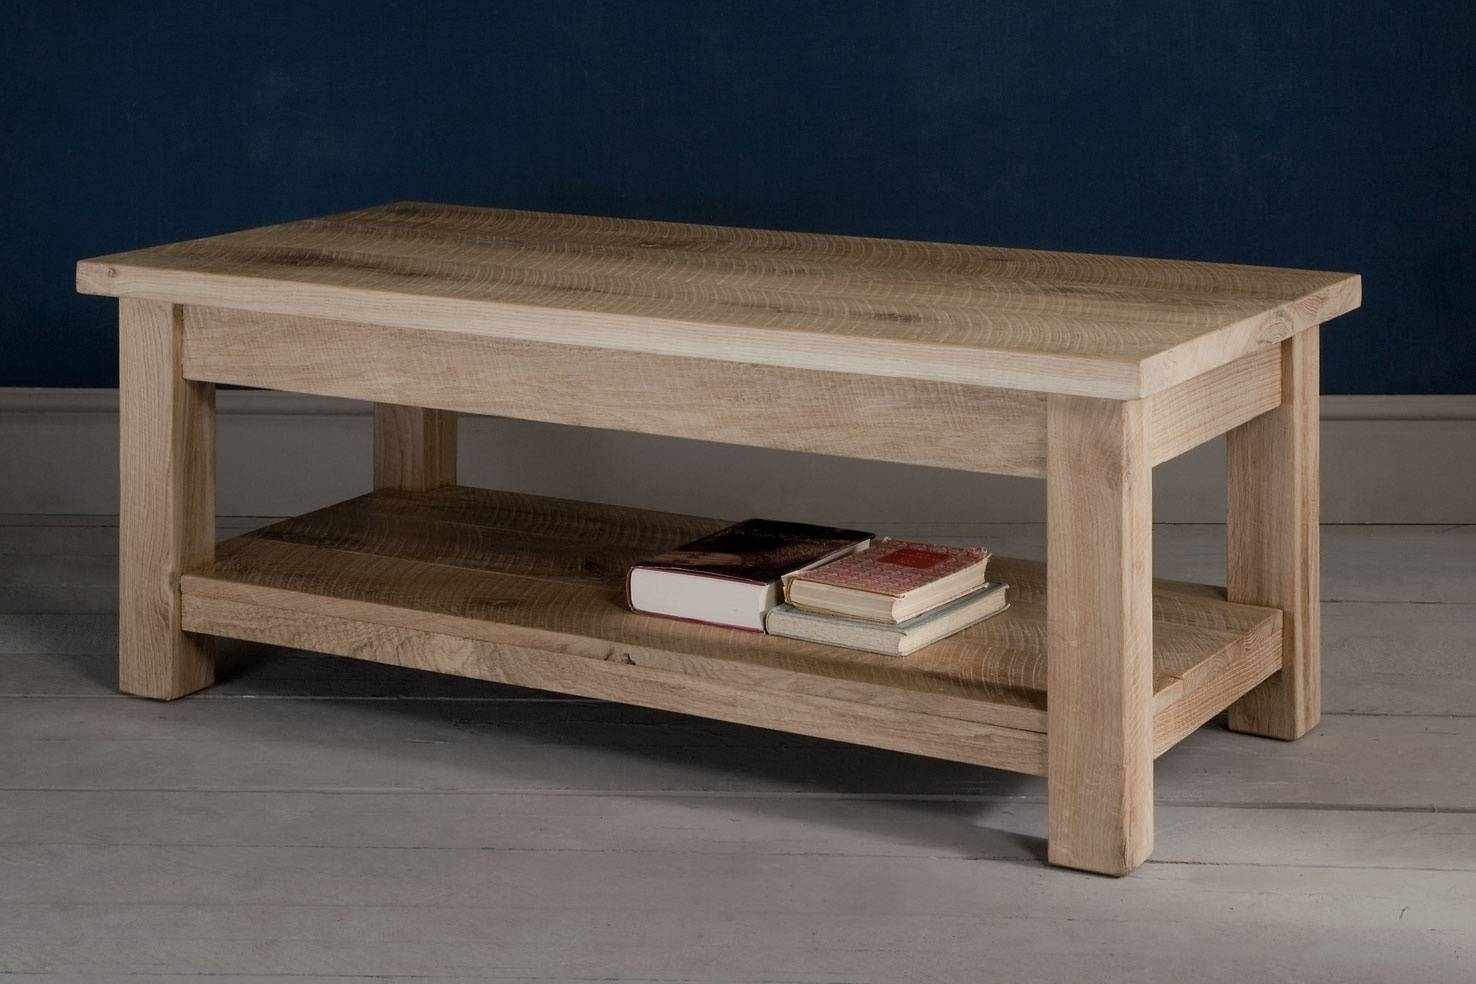 Oak Coffee Tableindigo Furniture regarding Oak Coffee Tables With Storage (Image 9 of 15)